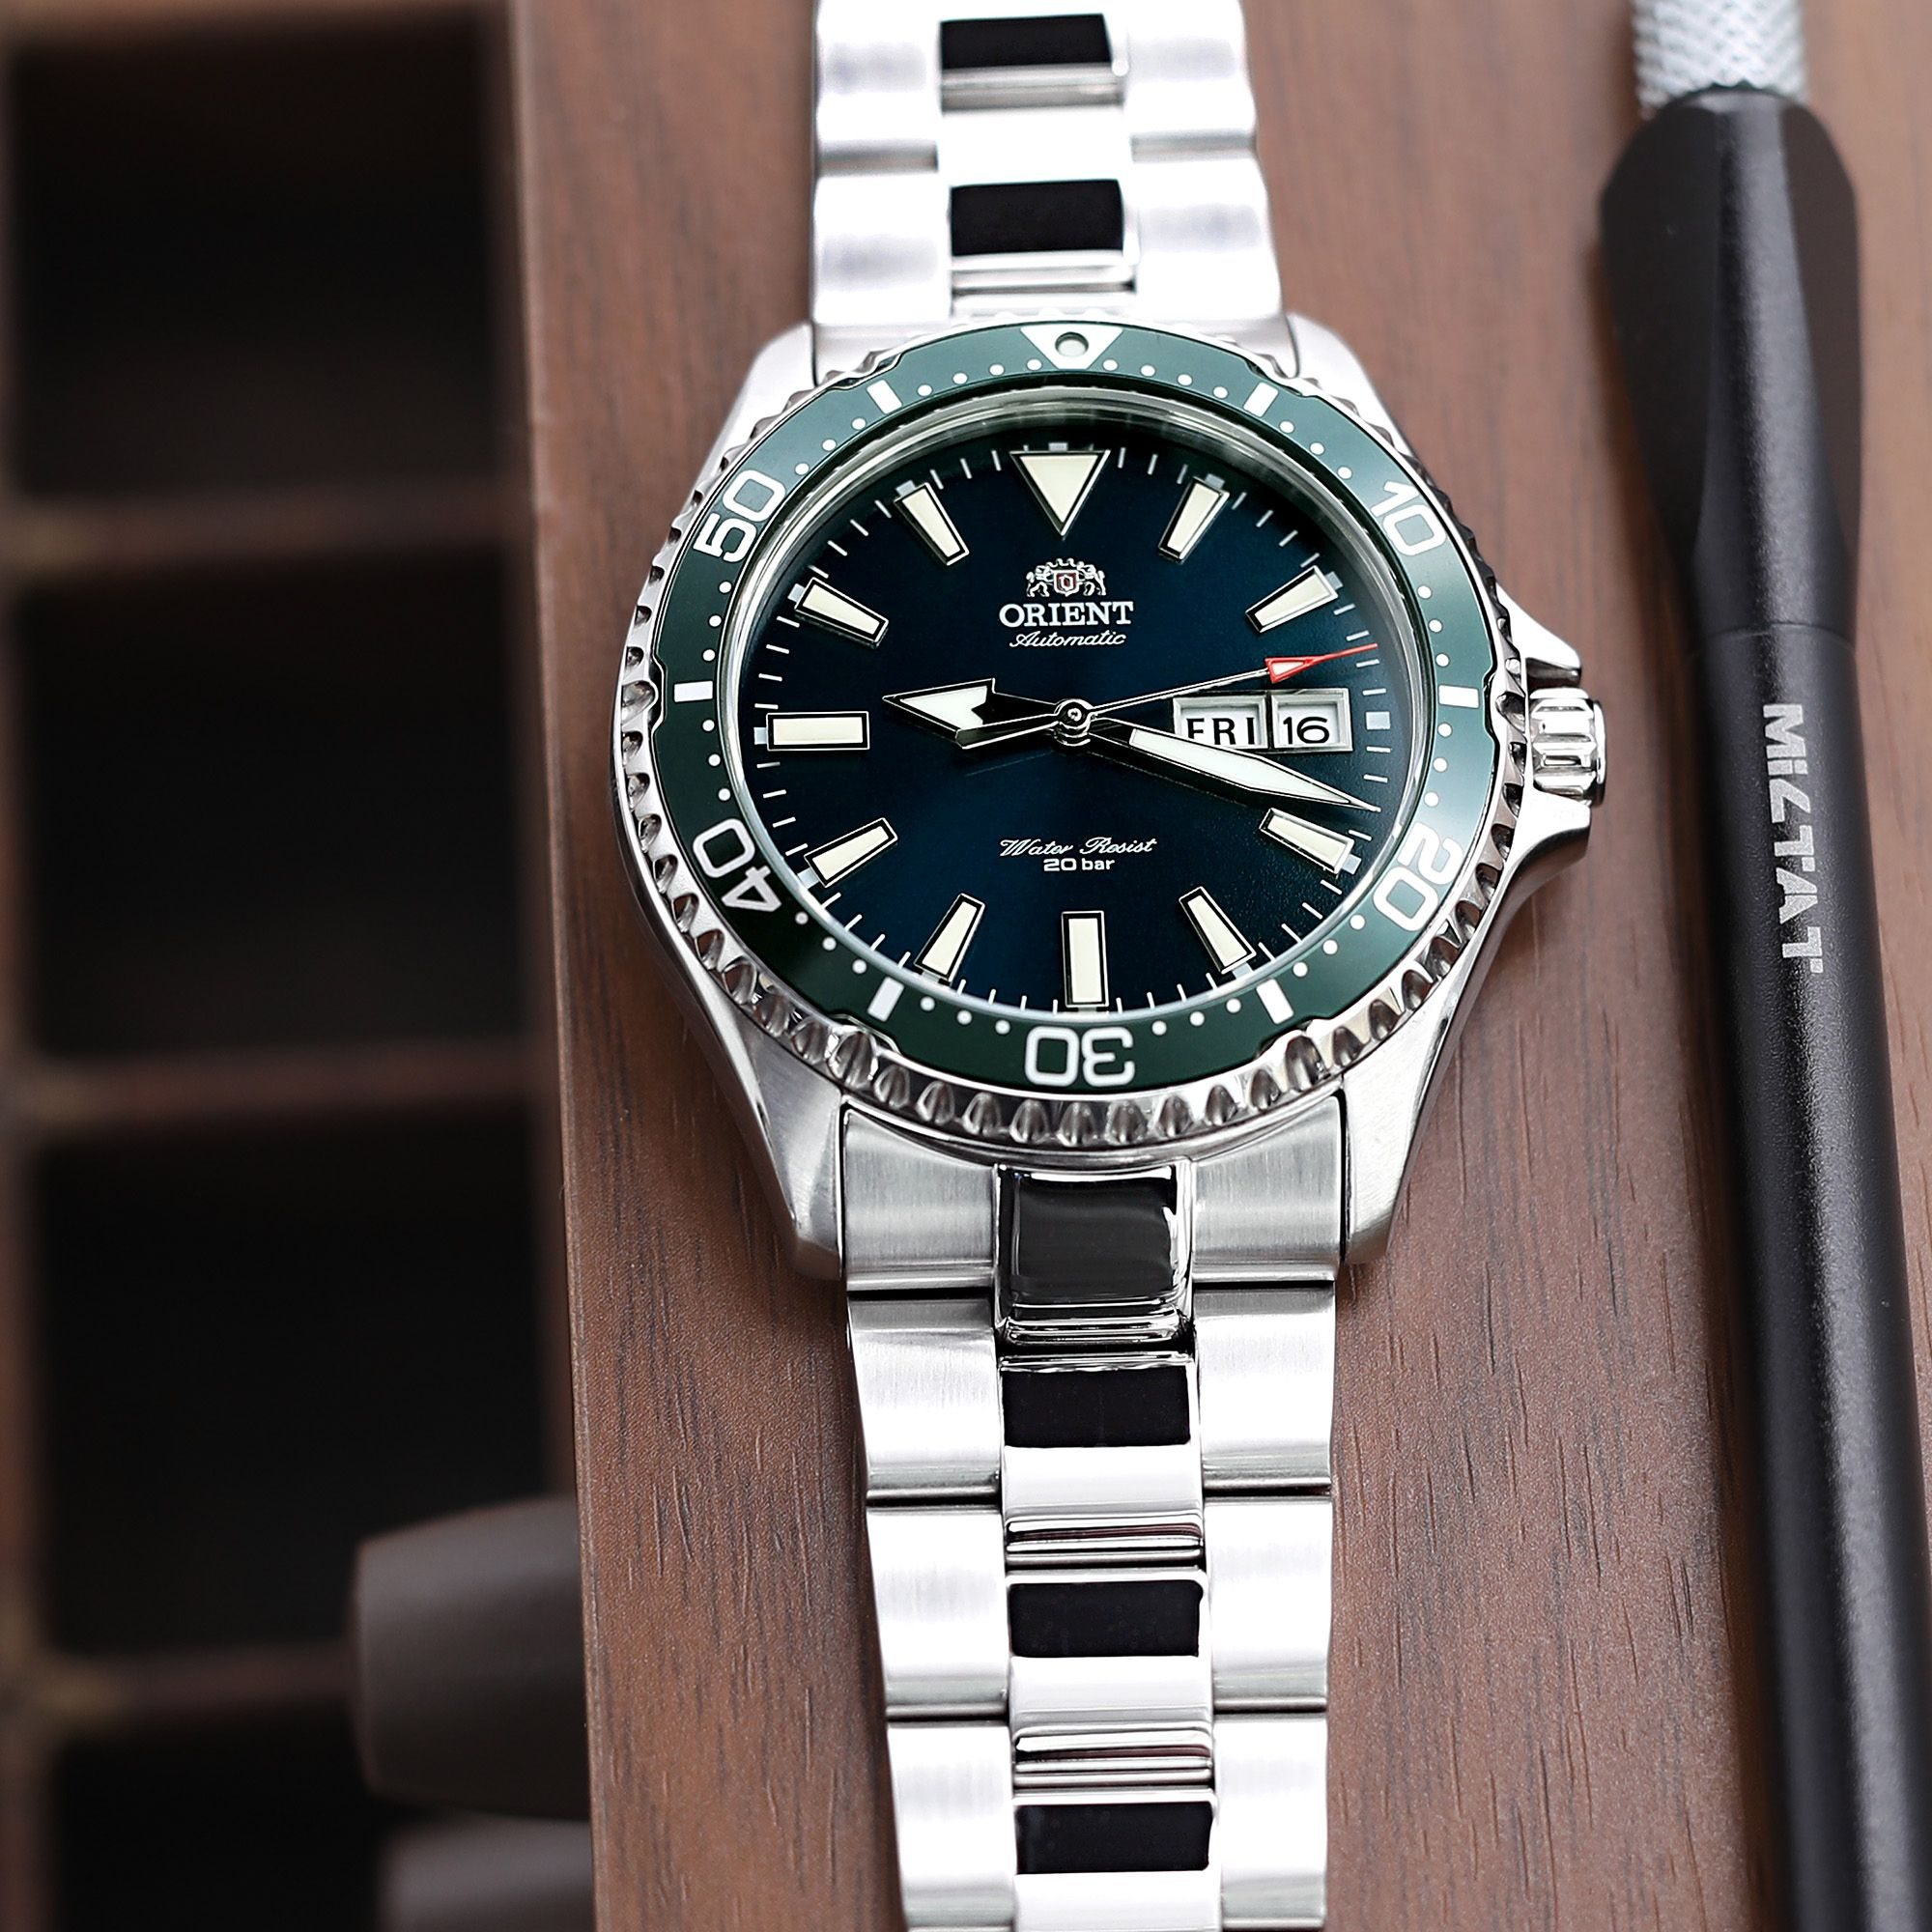 How To Get A Brushed Finish On Stainless Steel Watch